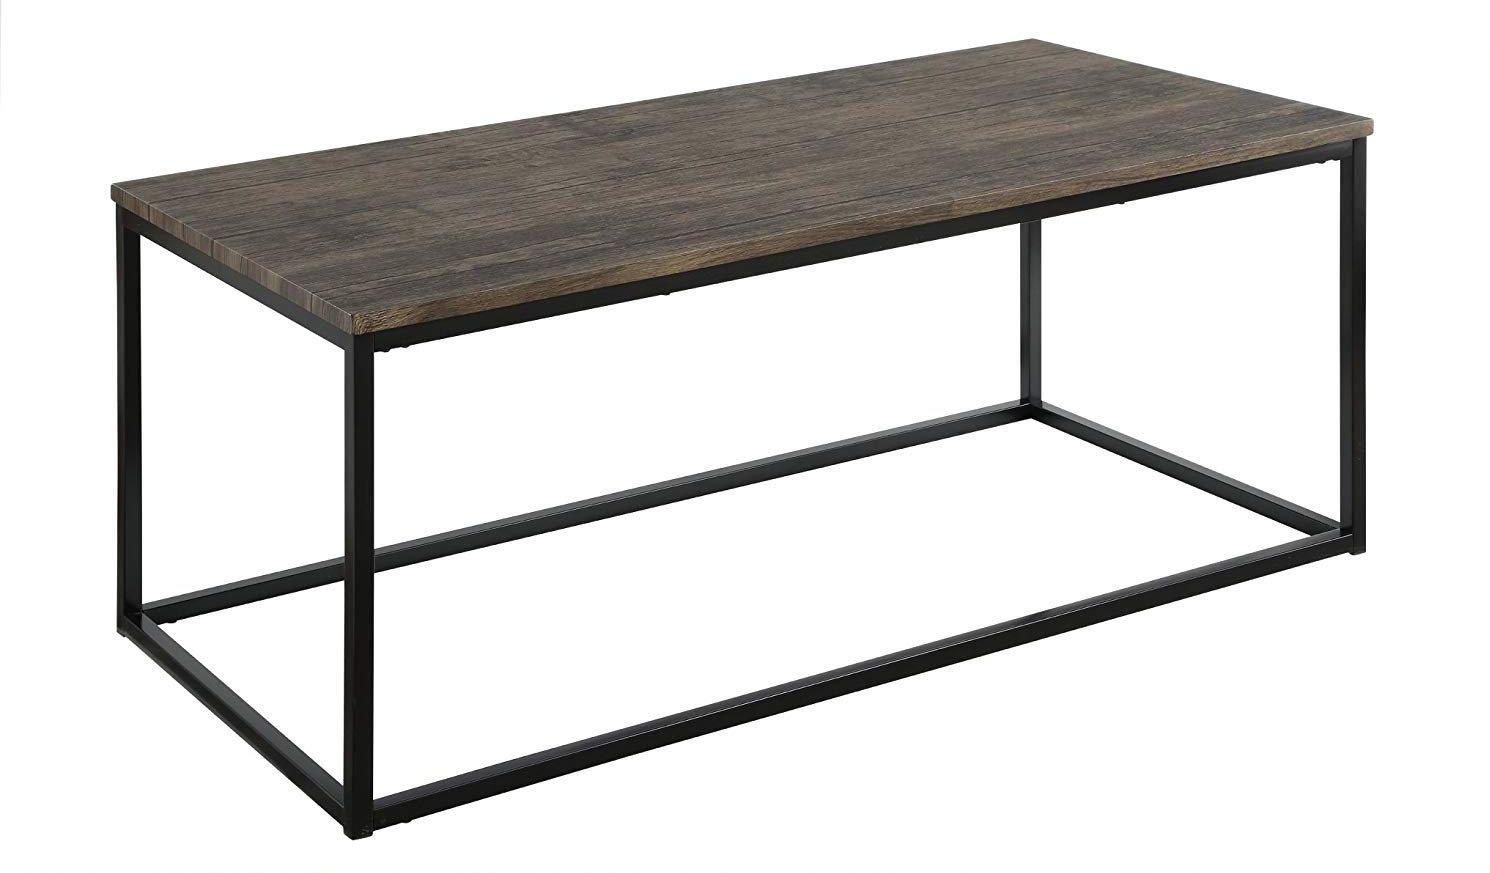 Amazon com abington lane contemporary rectangular coffee table modern cocktail table sofa table for living room and office distressed pecan kitchen